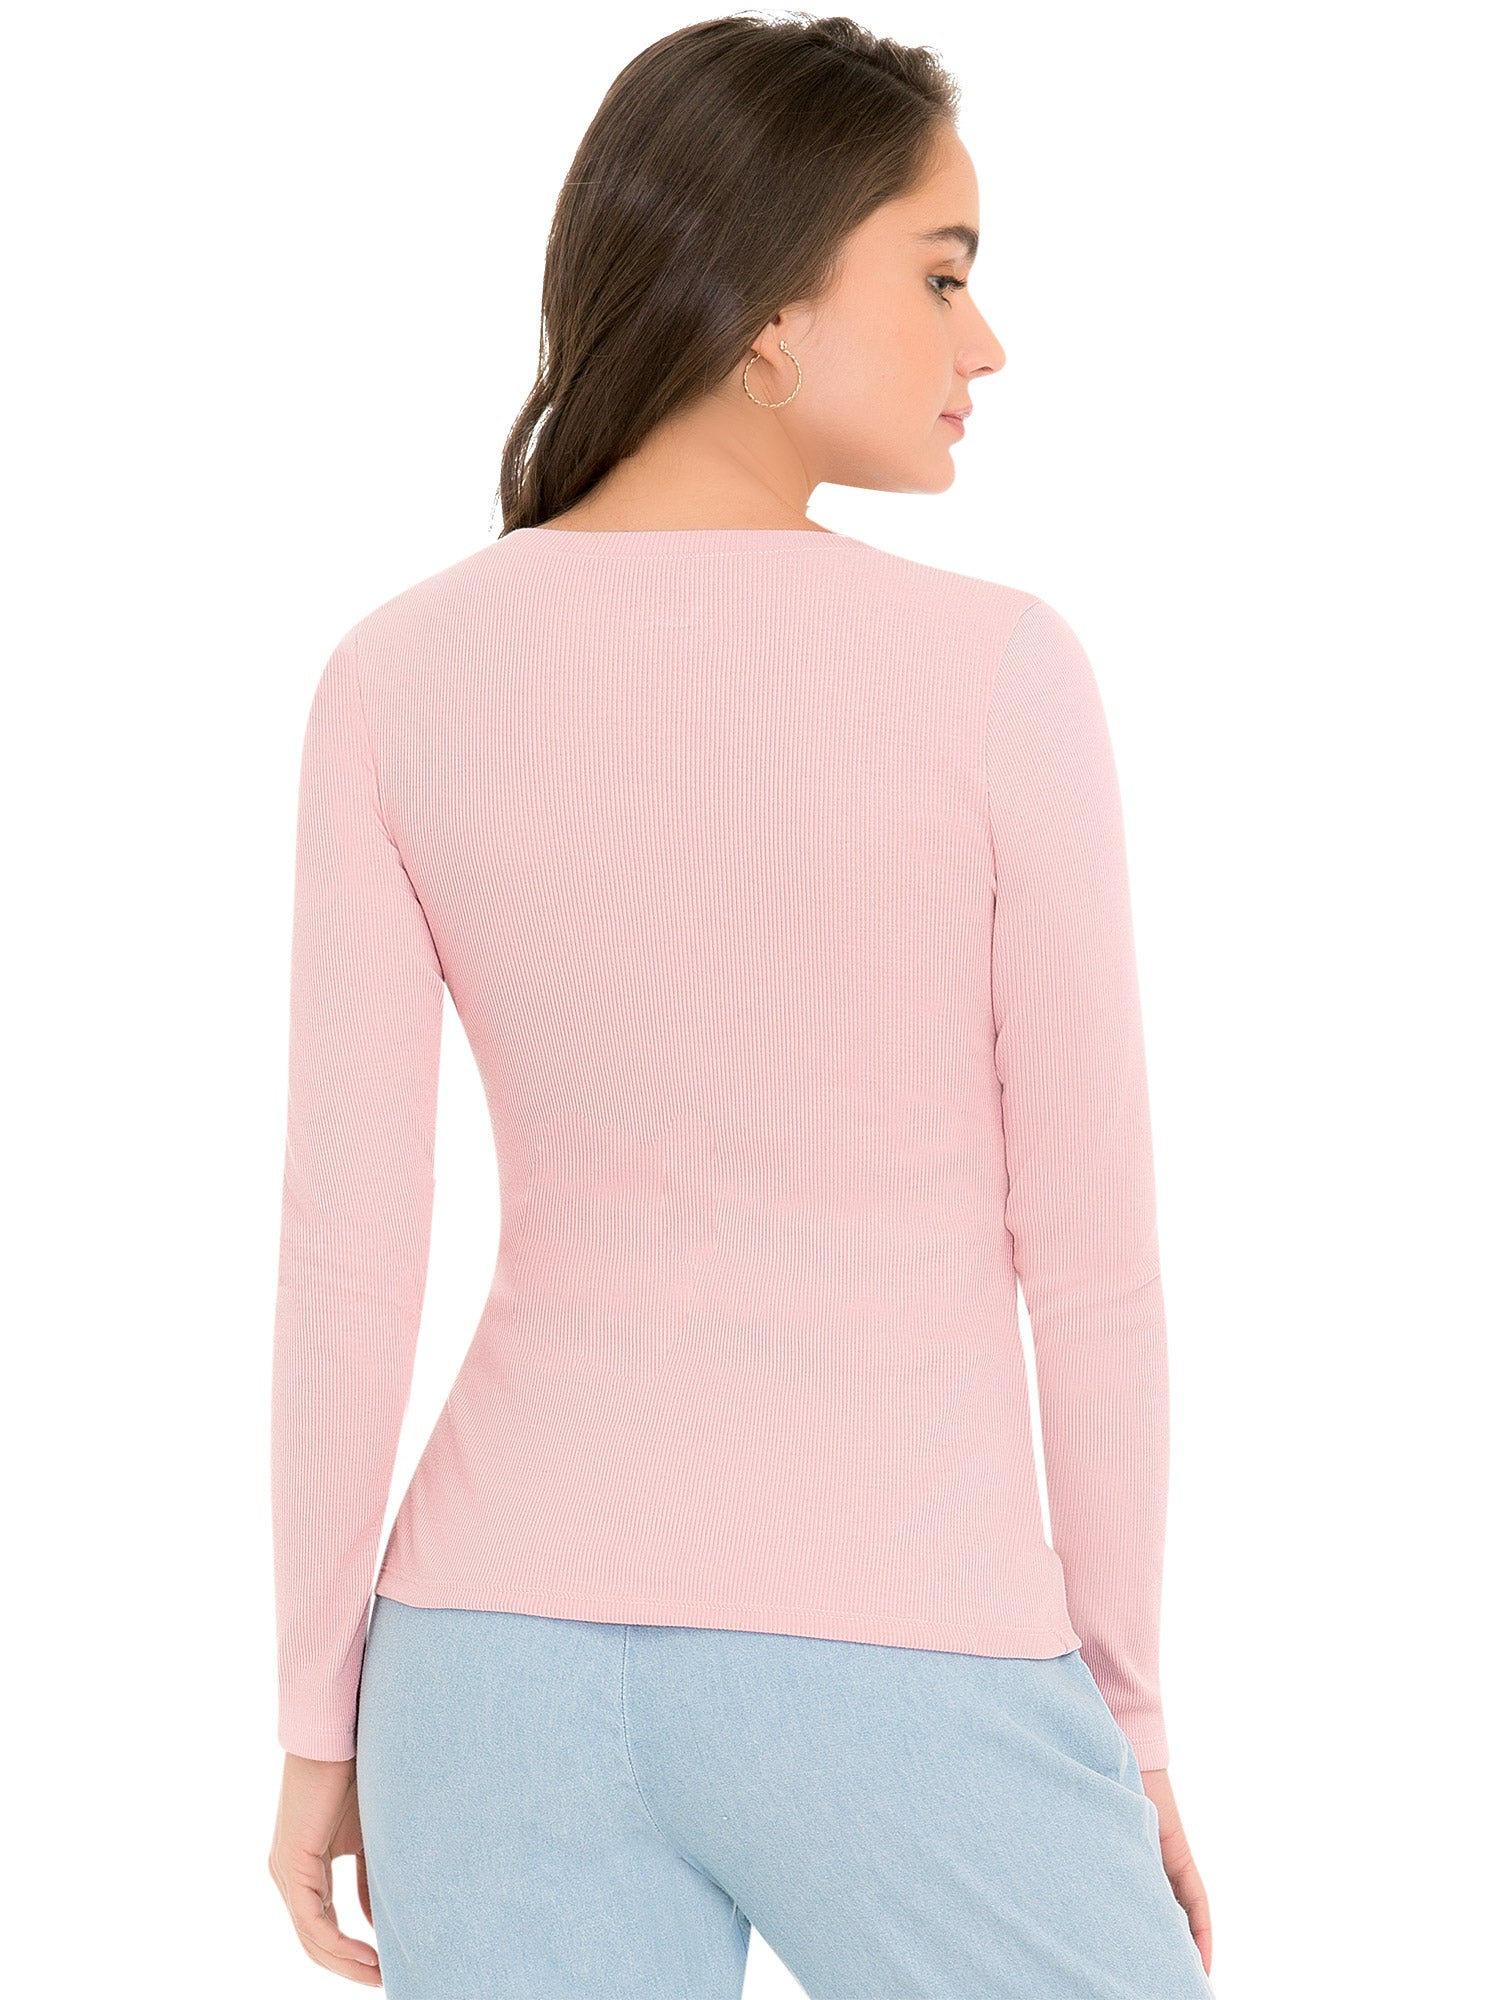 Long Sleeve Top 43860